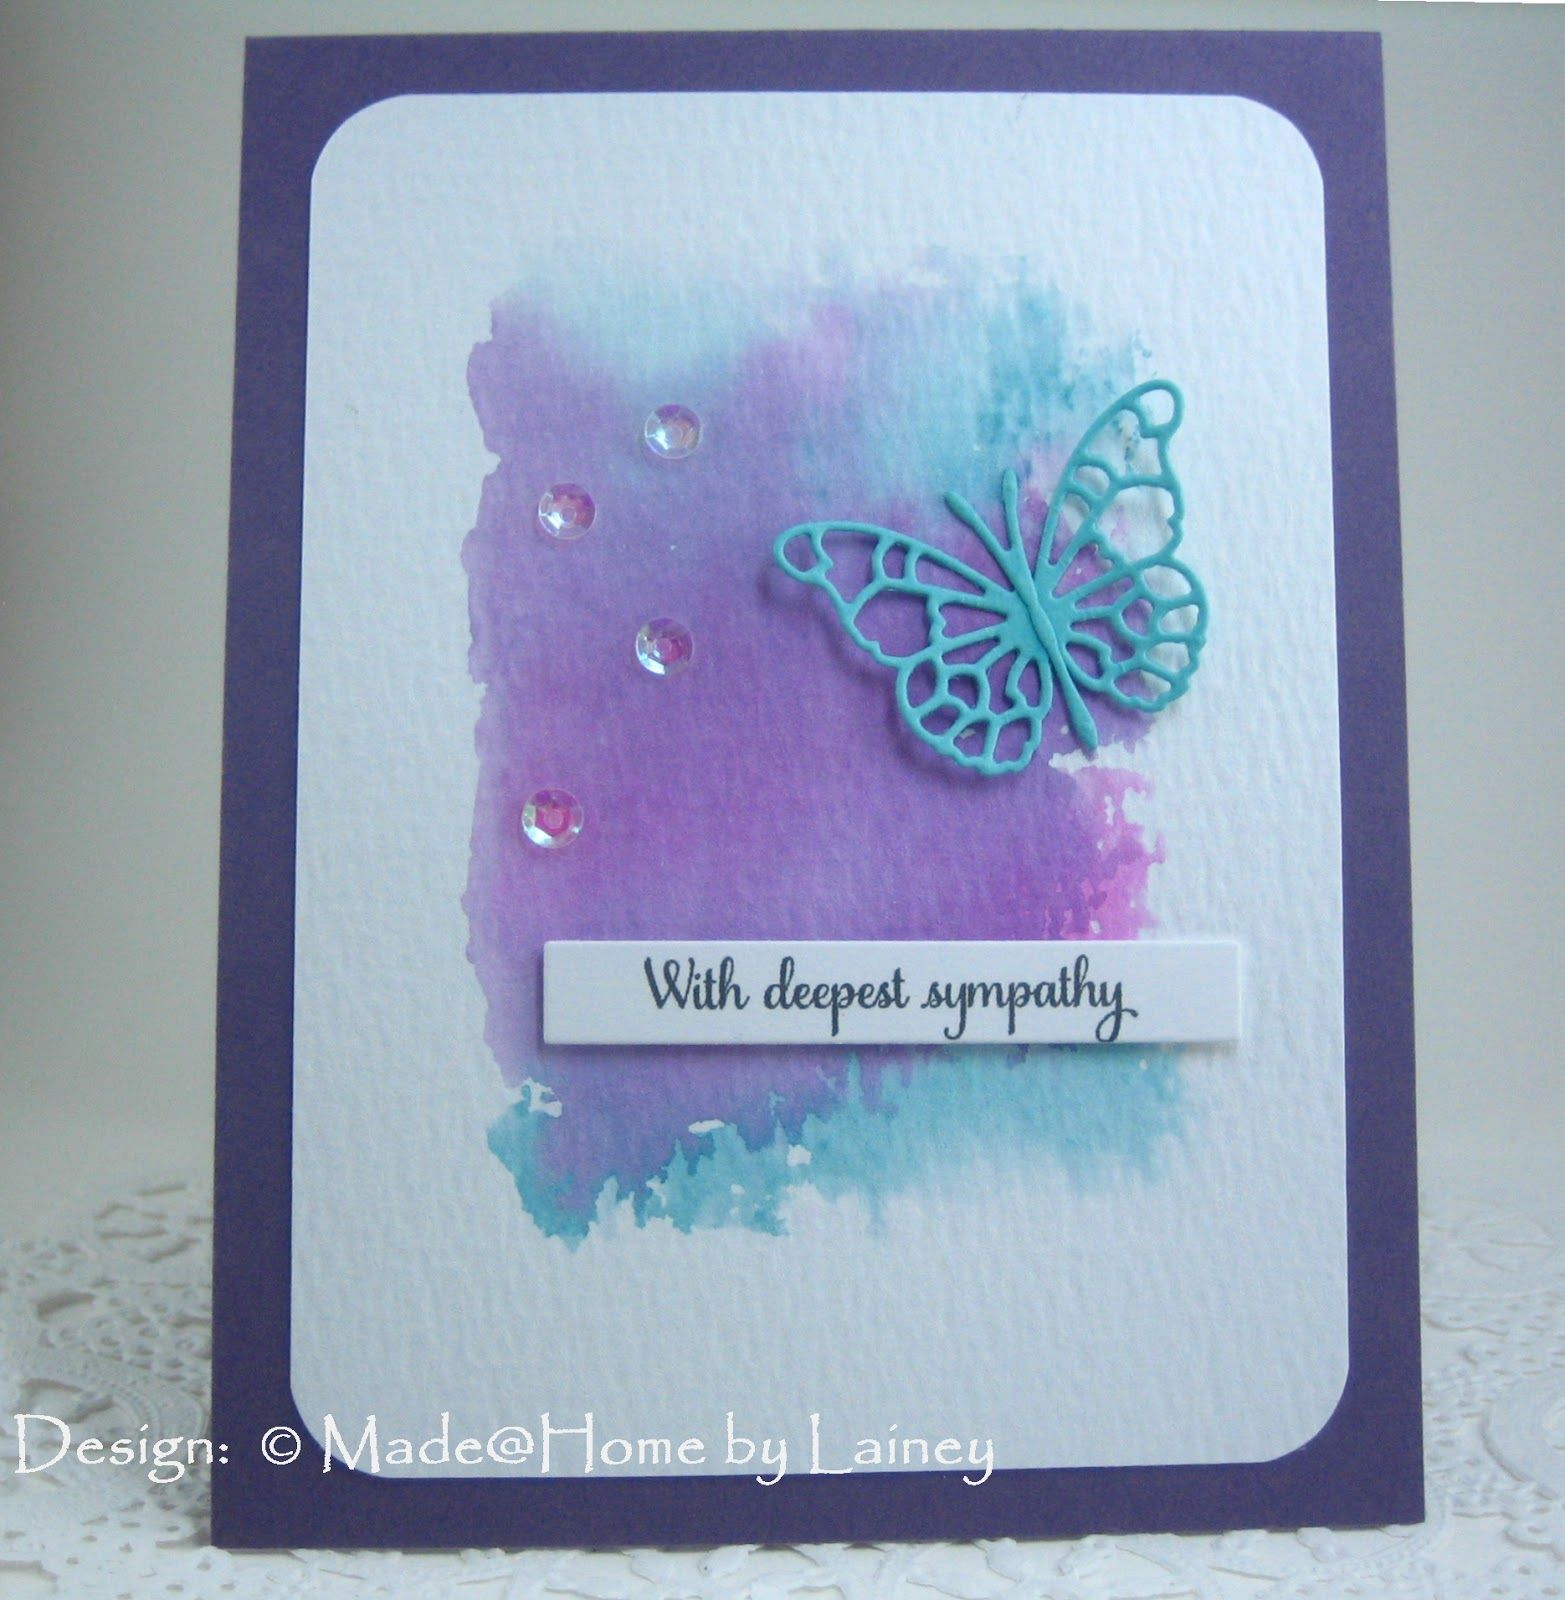 Made @ Home: With Deepest Sympathy